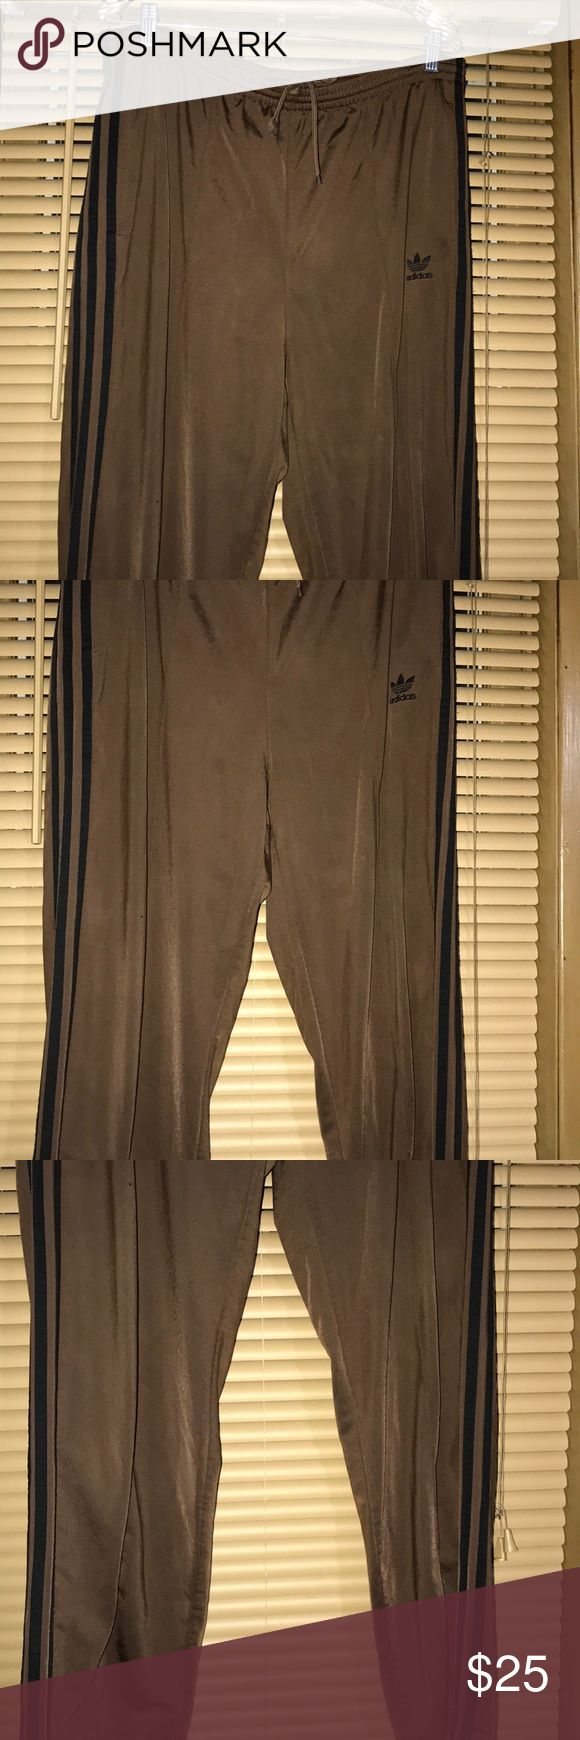 ADIDAS BROWN big and tall men's jogging pants Brown pants with draw string tie in front big and tall men Pants Sweatpants & Joggers